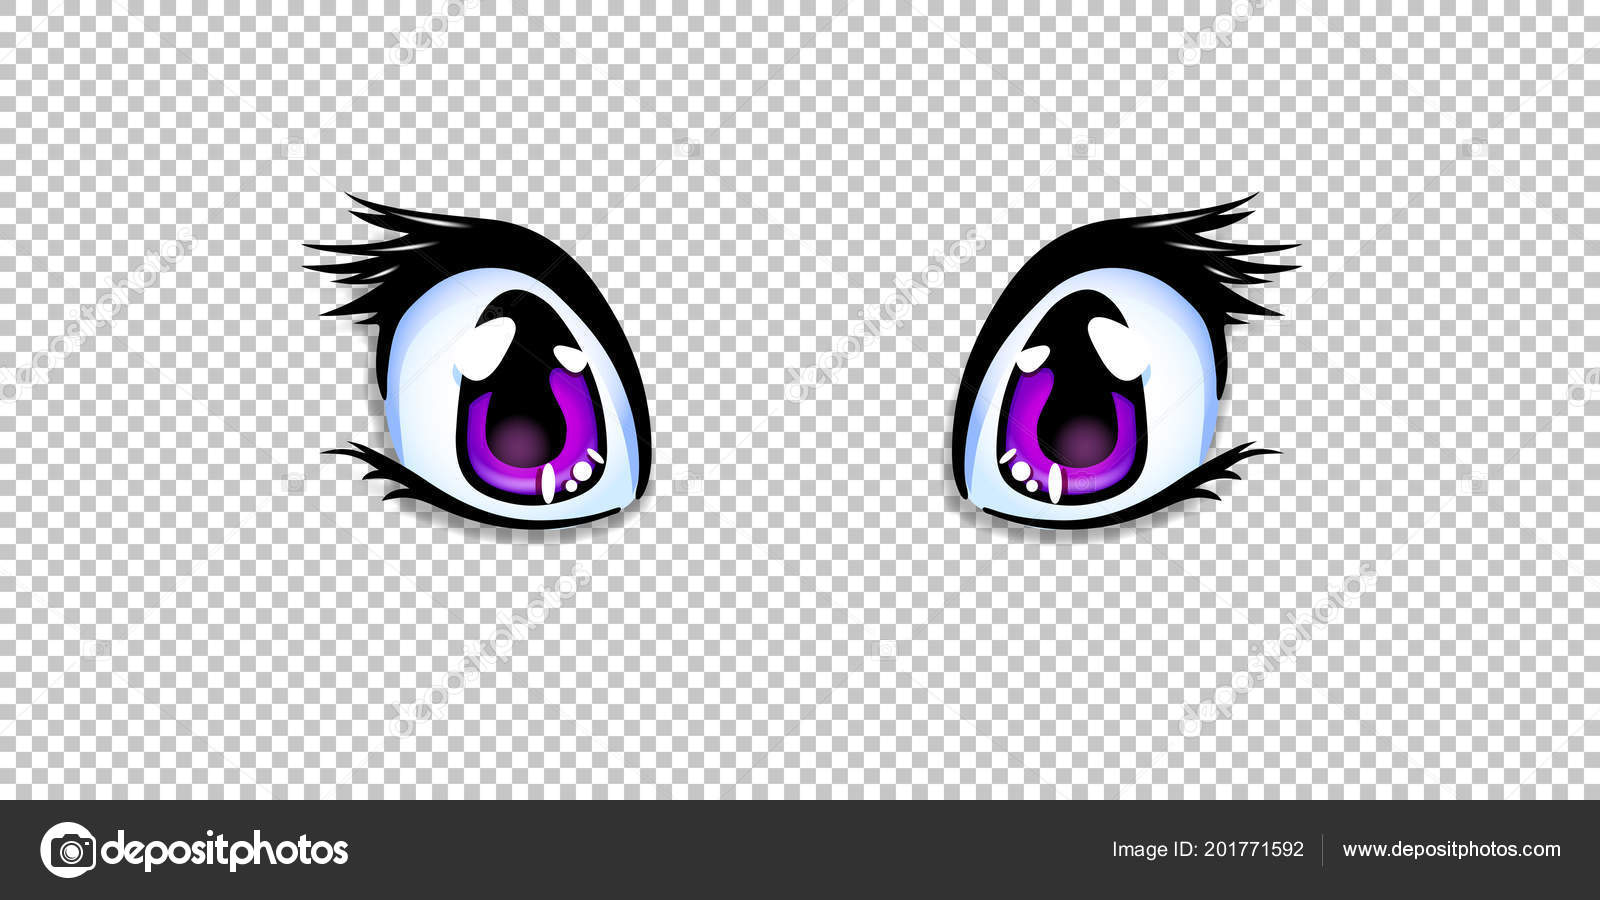 Manga Homme Realiste Anime Style Yeux Couleur Lilas Rose Pour